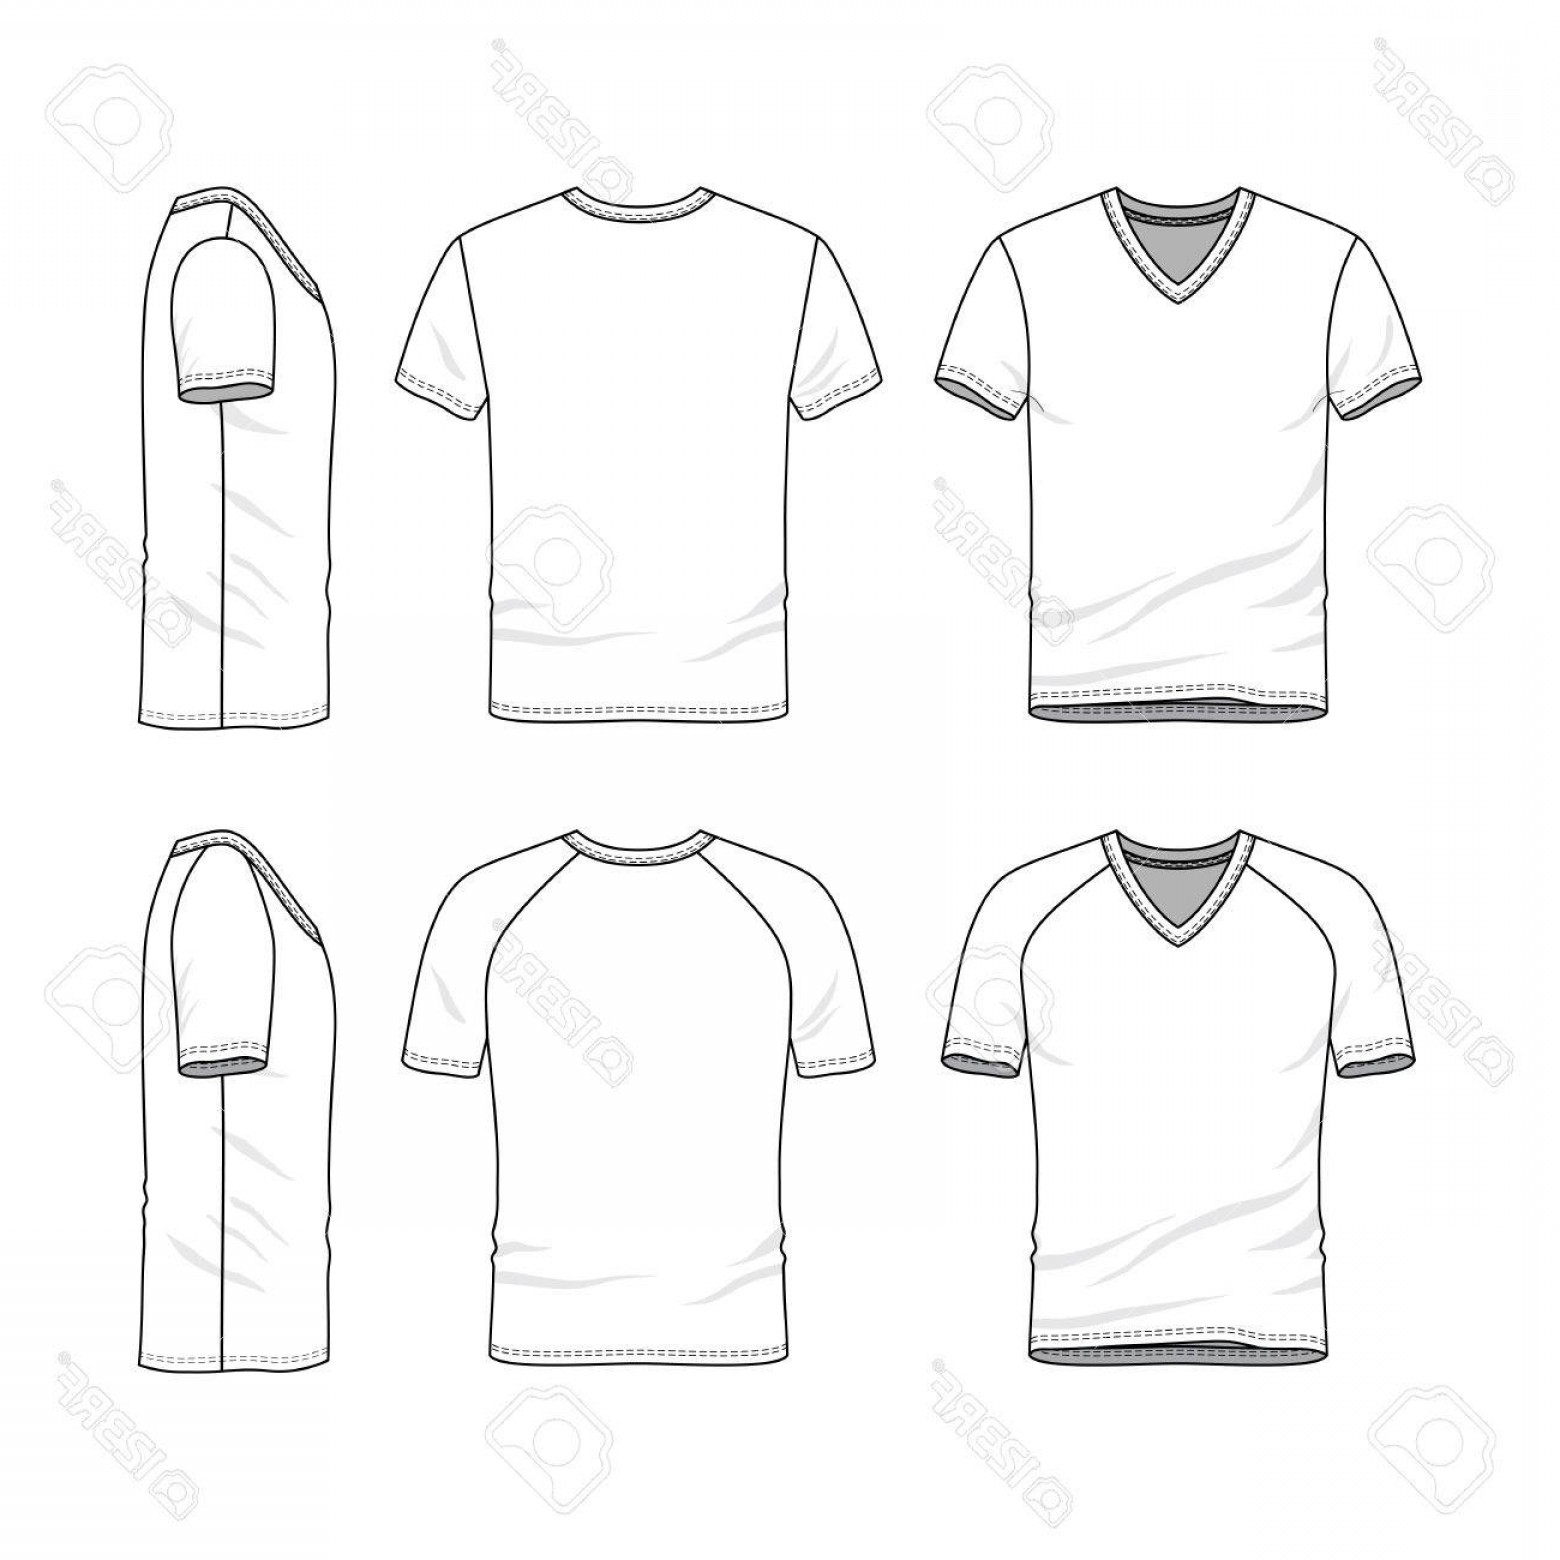 beb6815ab62e Photostock Illustration Vector Templates Of Clothing Set Front Back Side  Views Of Blank V Neck T Shirt Sportswear Uniform Cl